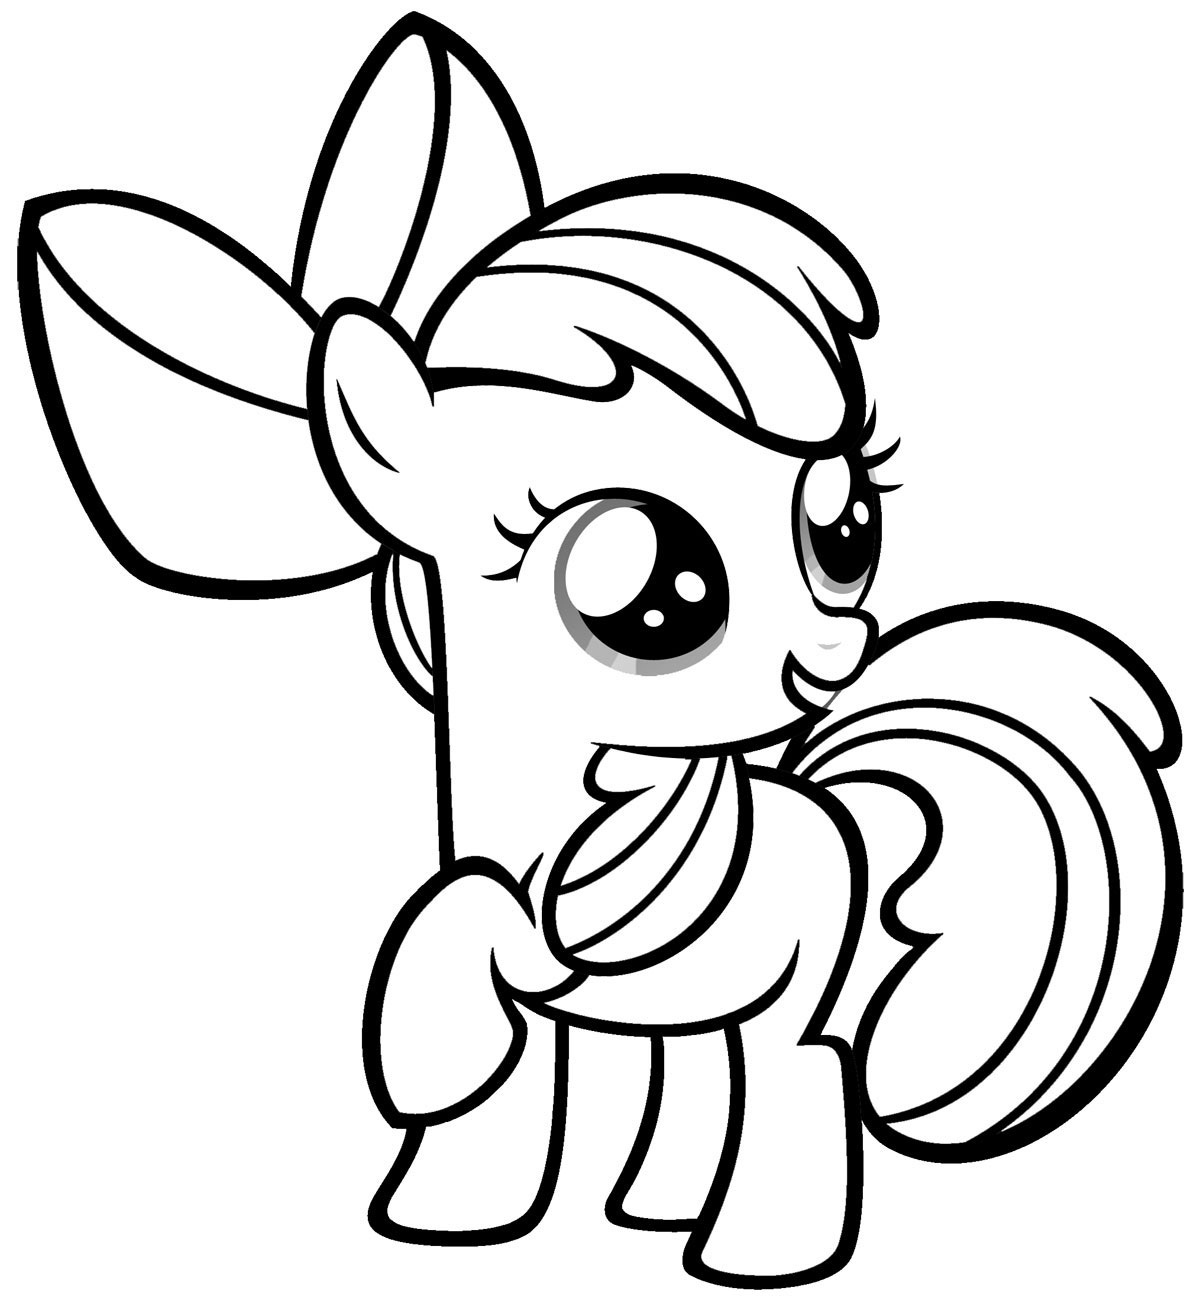 my little ponies coloring pages my little pony coloring pages 2018 dr odd coloring ponies little pages my